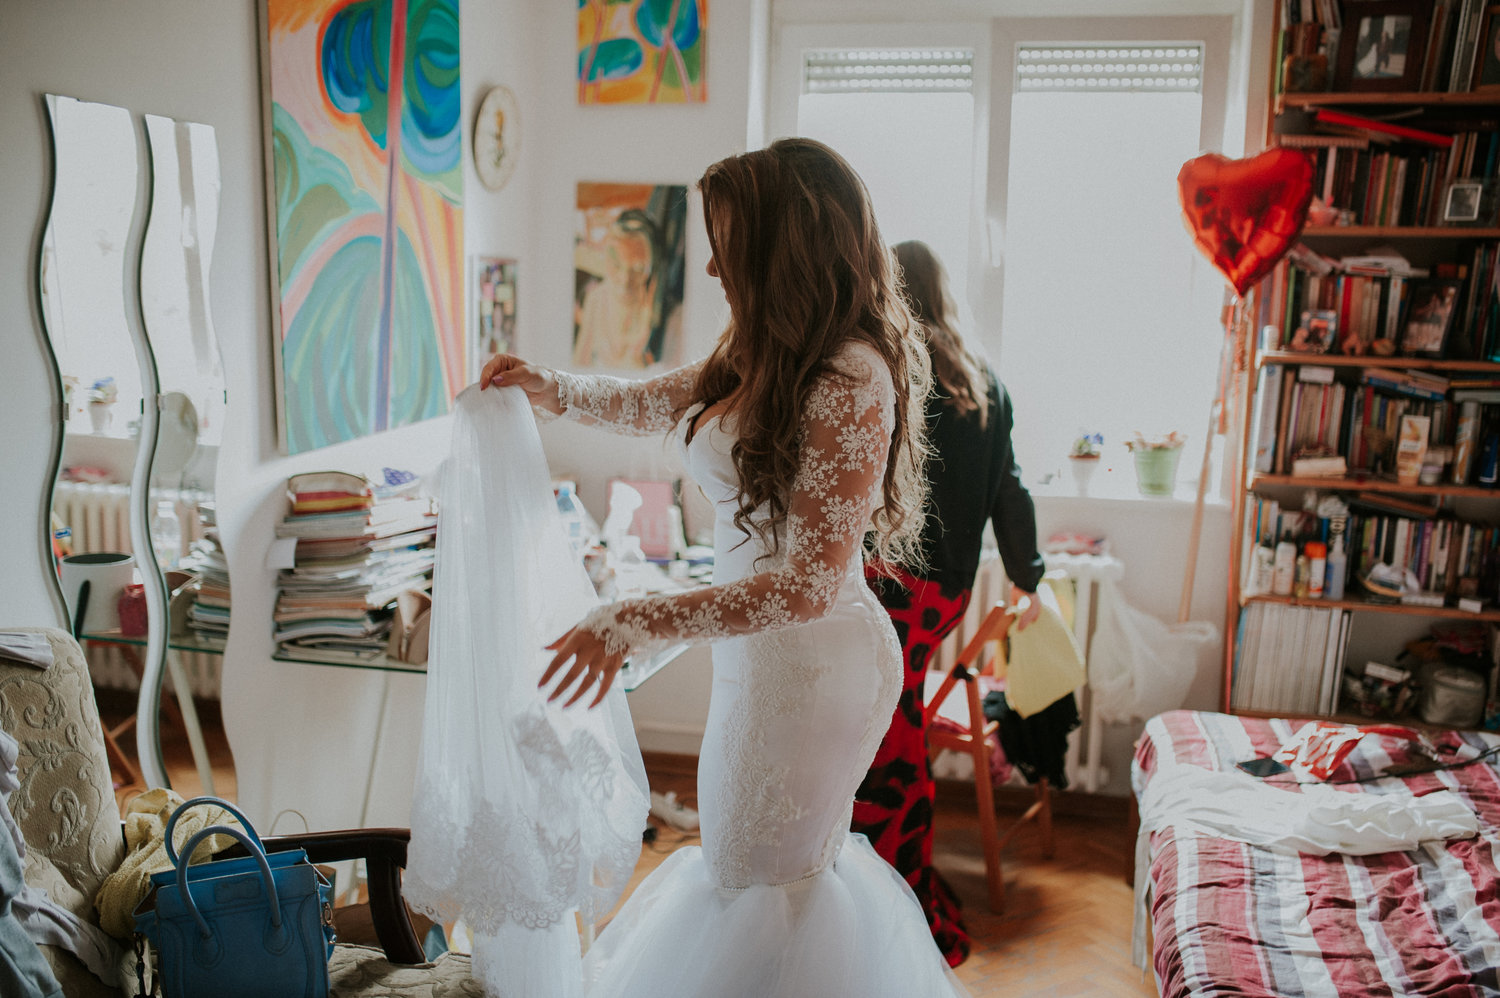 Sofia getting ready in DIY wedding dress surrounded by parents' paintings serbia Aleska and Mina Photography